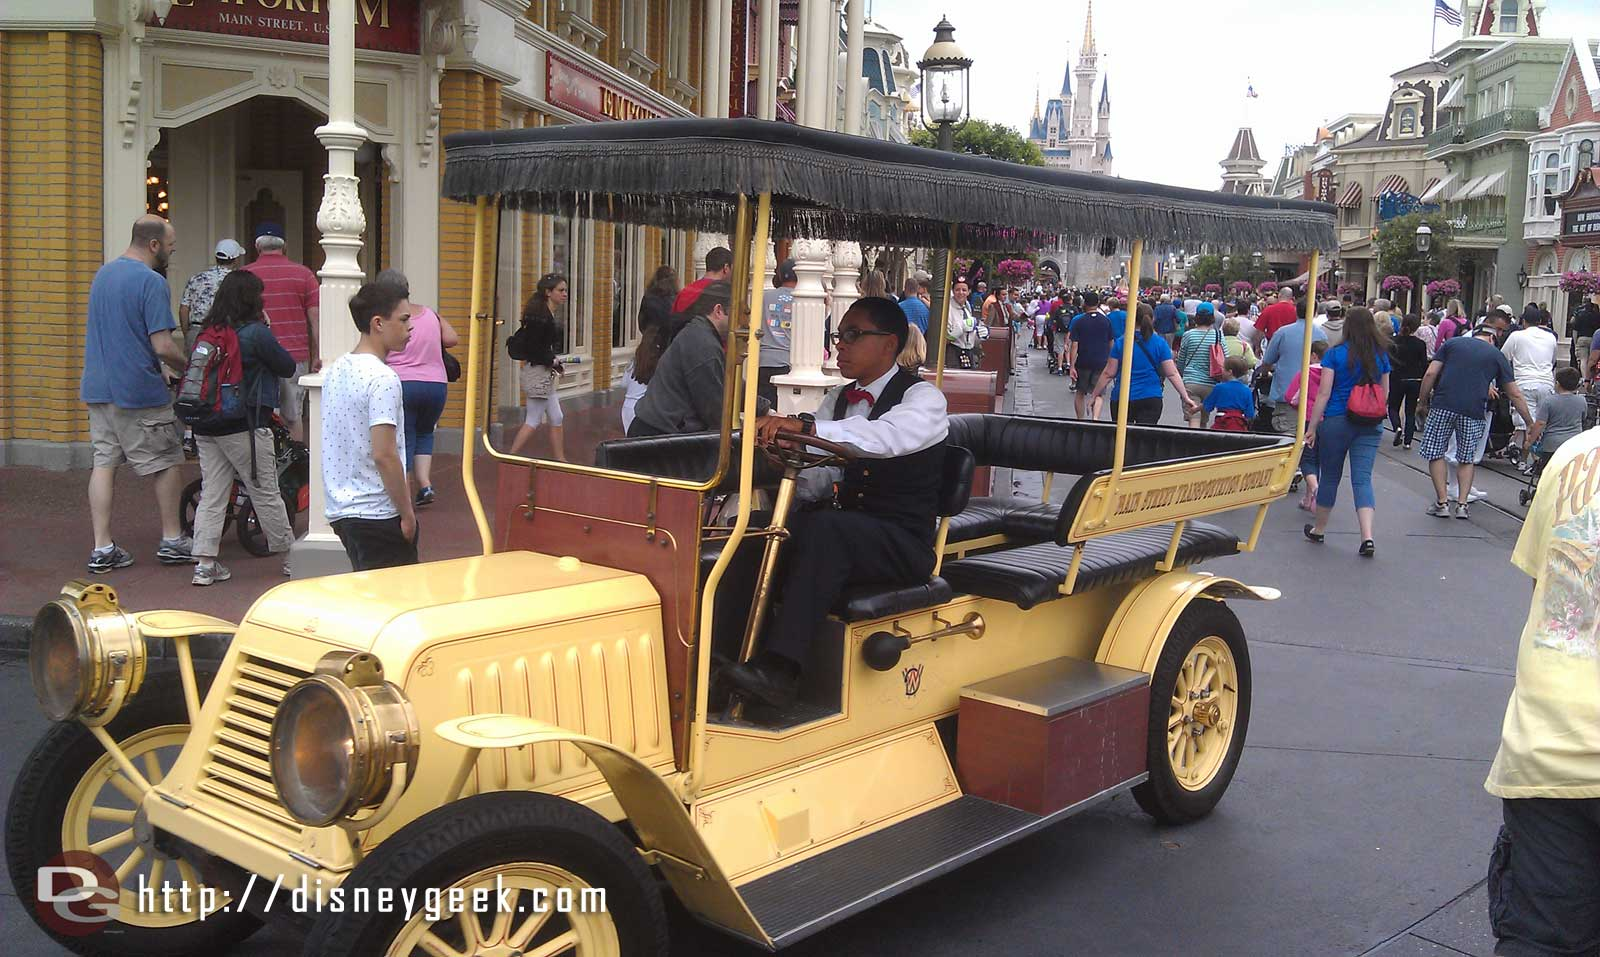 Main Street transportation, two cars and a trolley out